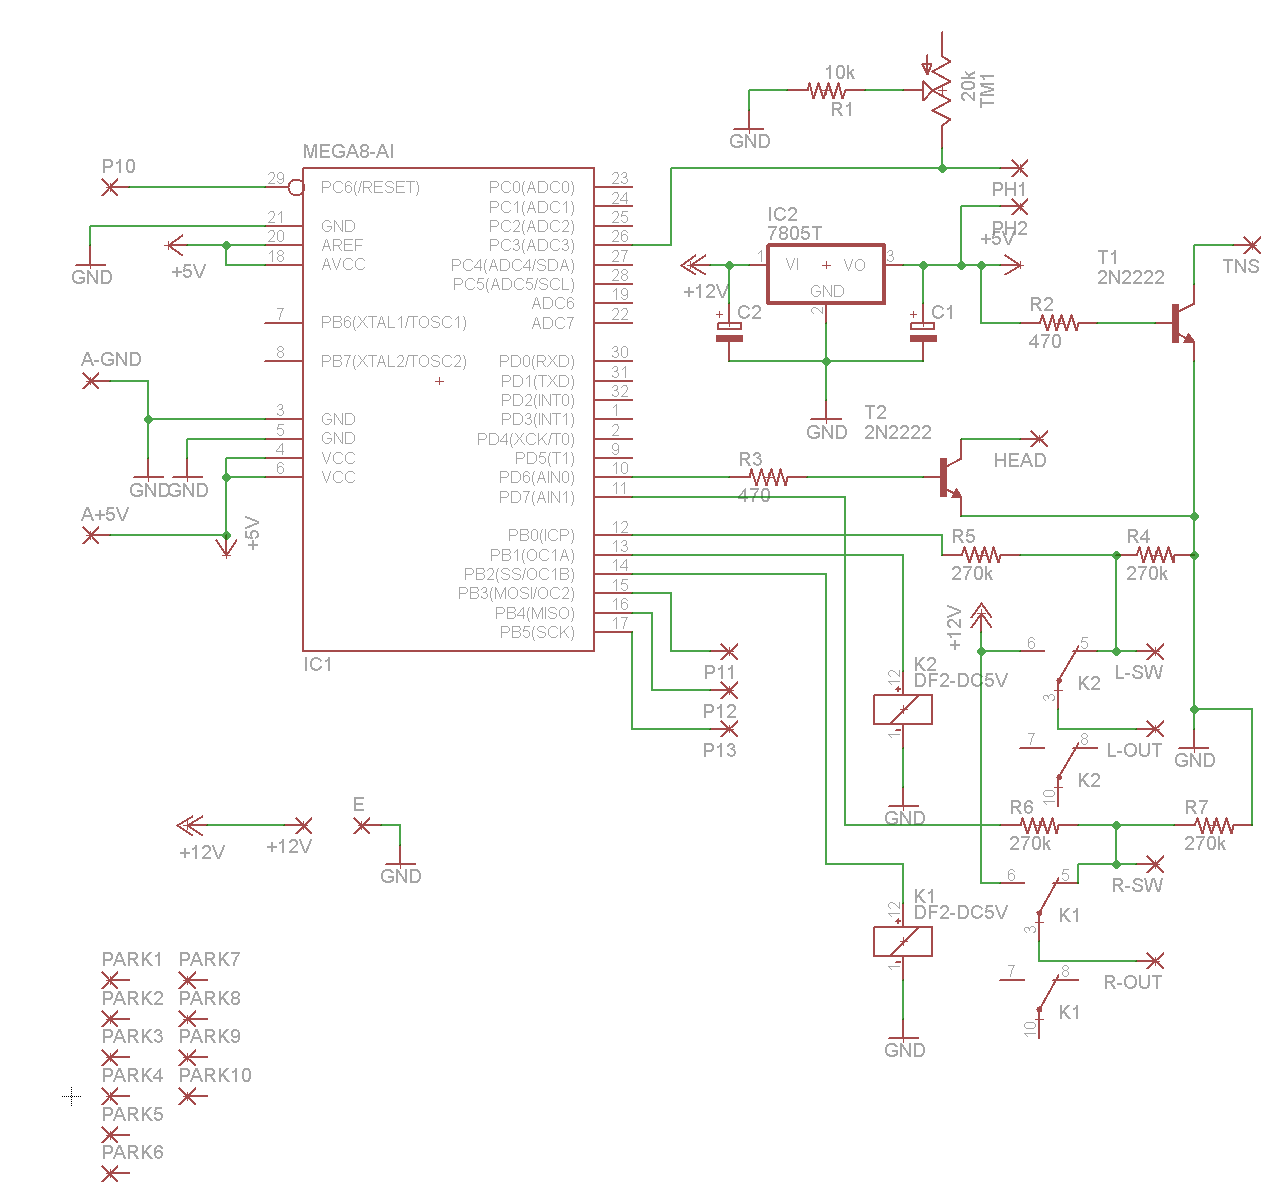 Projects And Notes Miata Ignition Key Bypass 95 Head Unit Wiring Diagram I Am Using Free Version Of Eagle To Do The Schematic Design You Can Download My Files Here